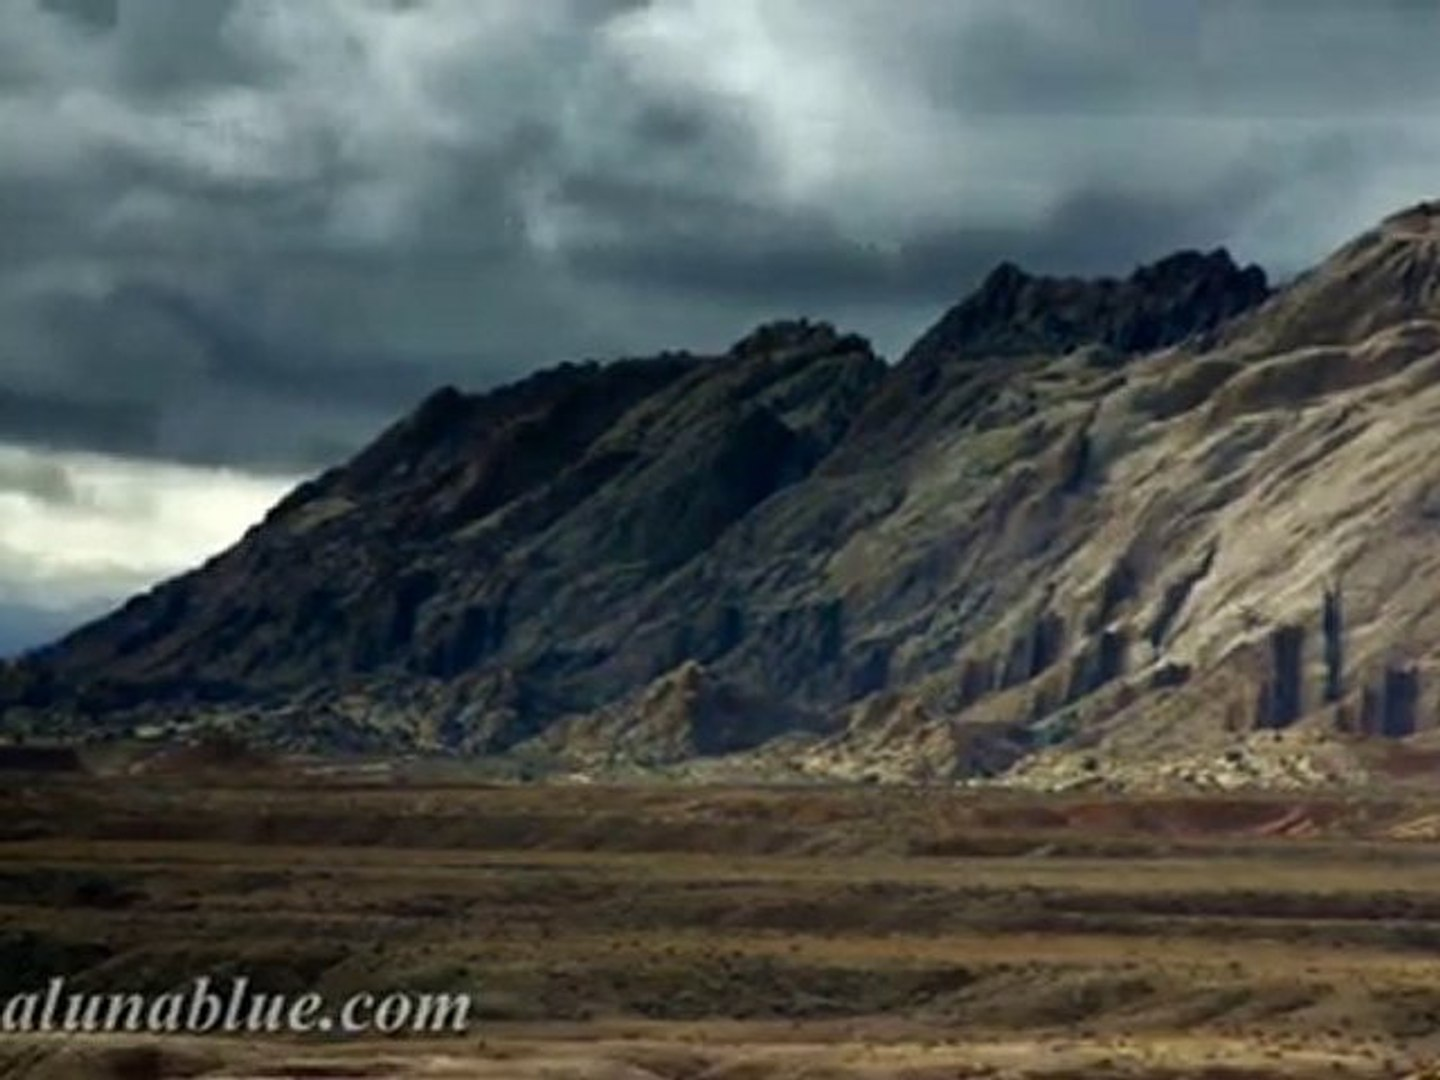 Stock Footage - Time Lapse Stock Video - Time Lapse 03 clip